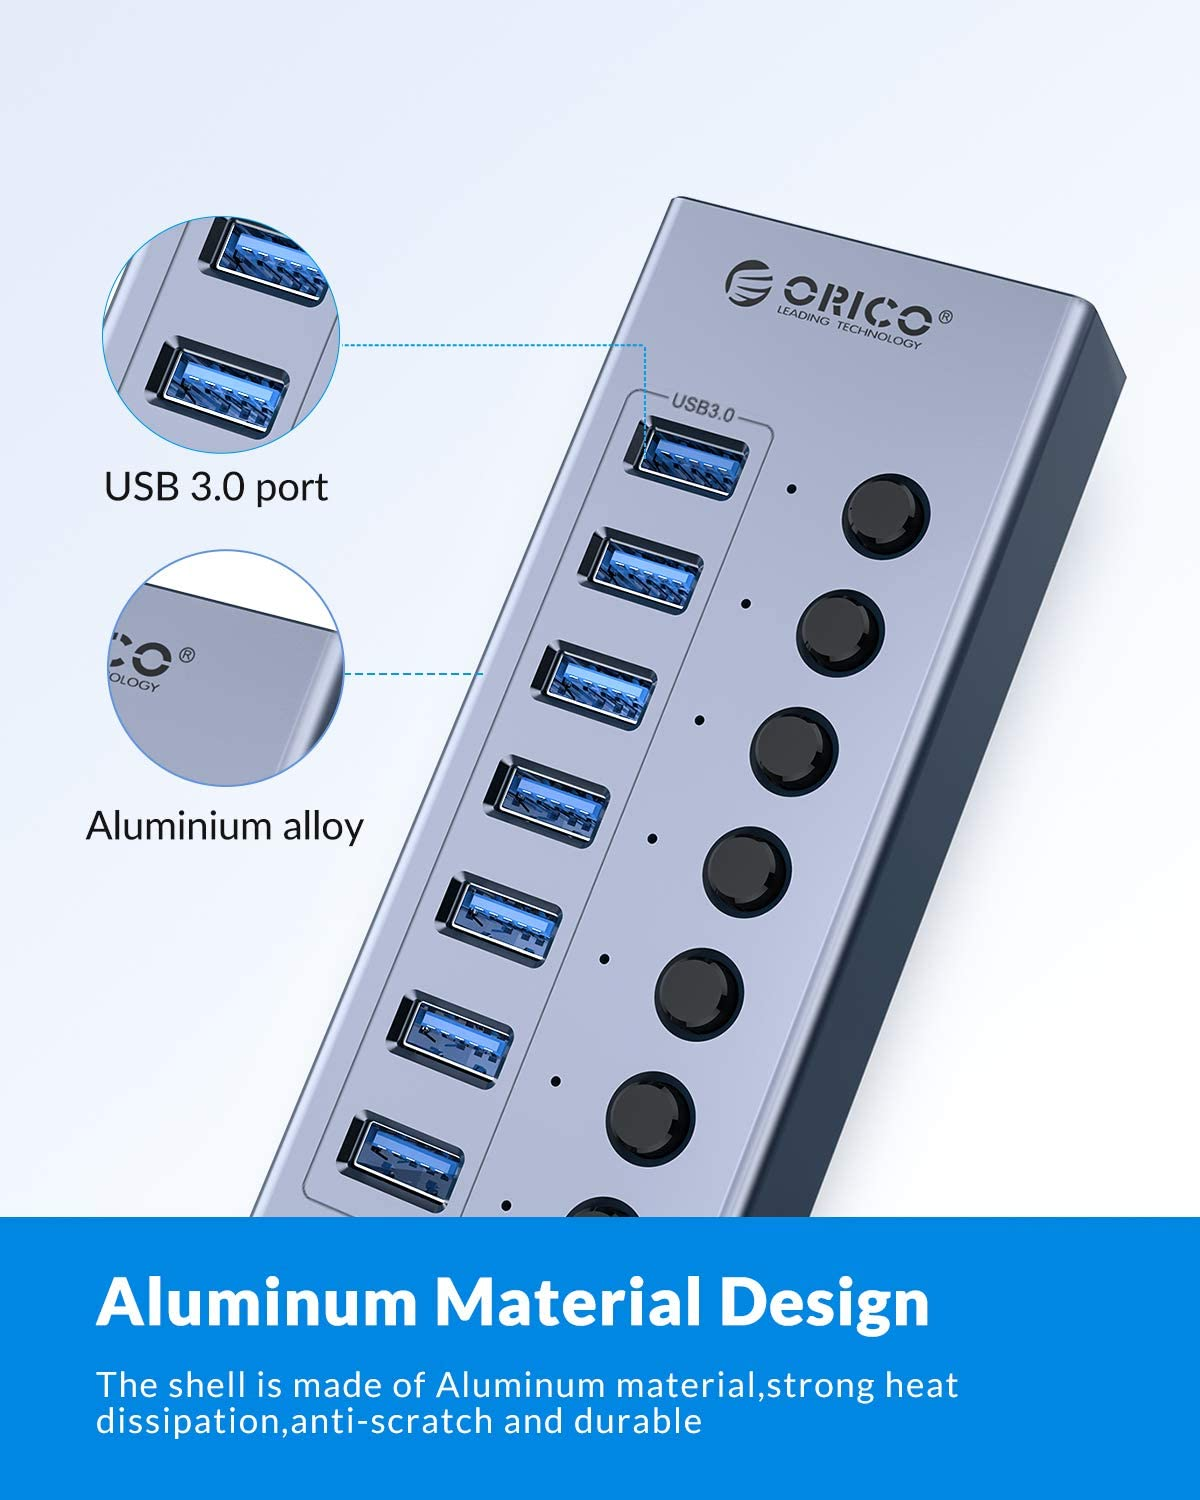 ORICO USB 3.0 Hub Powered 7 Ports USB Data Hub with Individual On/Off Switches and12V Power Adapter Support BC1.2 Charging, USB Extension for iMac Pro, MacBook Air/Mini, PS4, Surface Pro, PC, HDD: Computers & Accessories